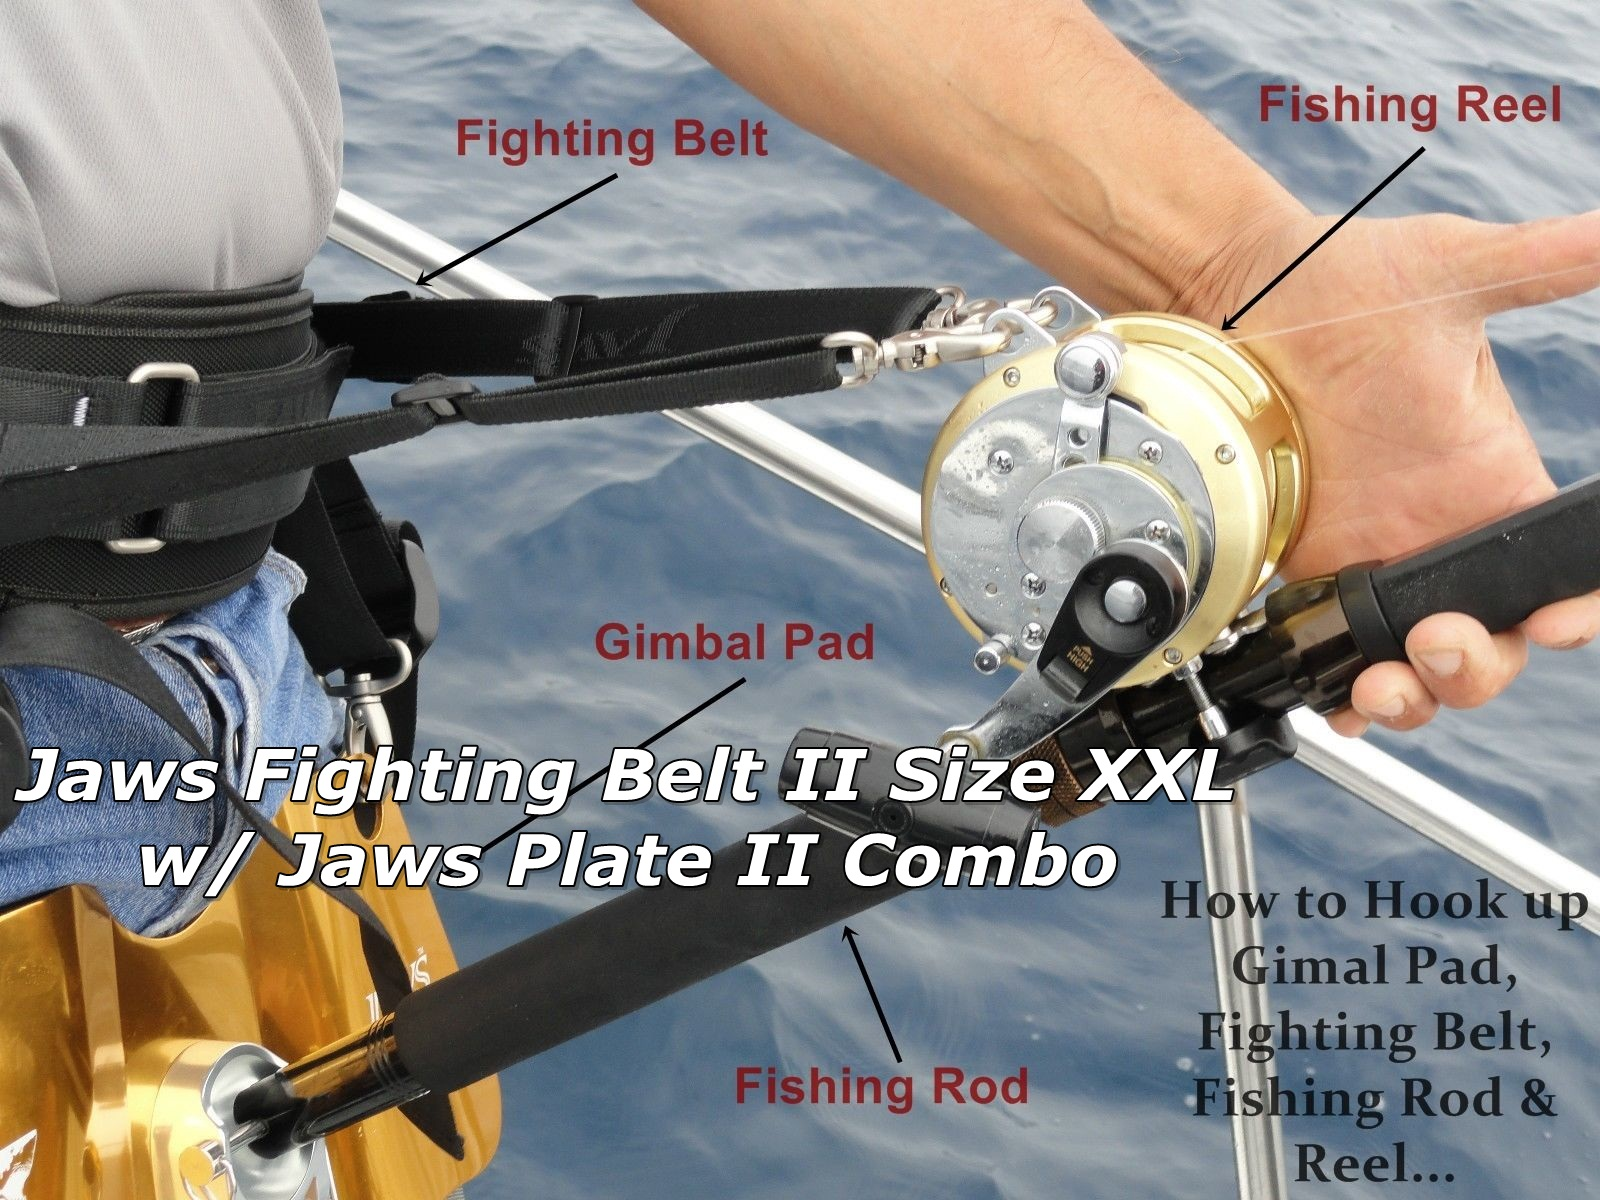 Flighting Belt Size XXL with Gimbal Pad II